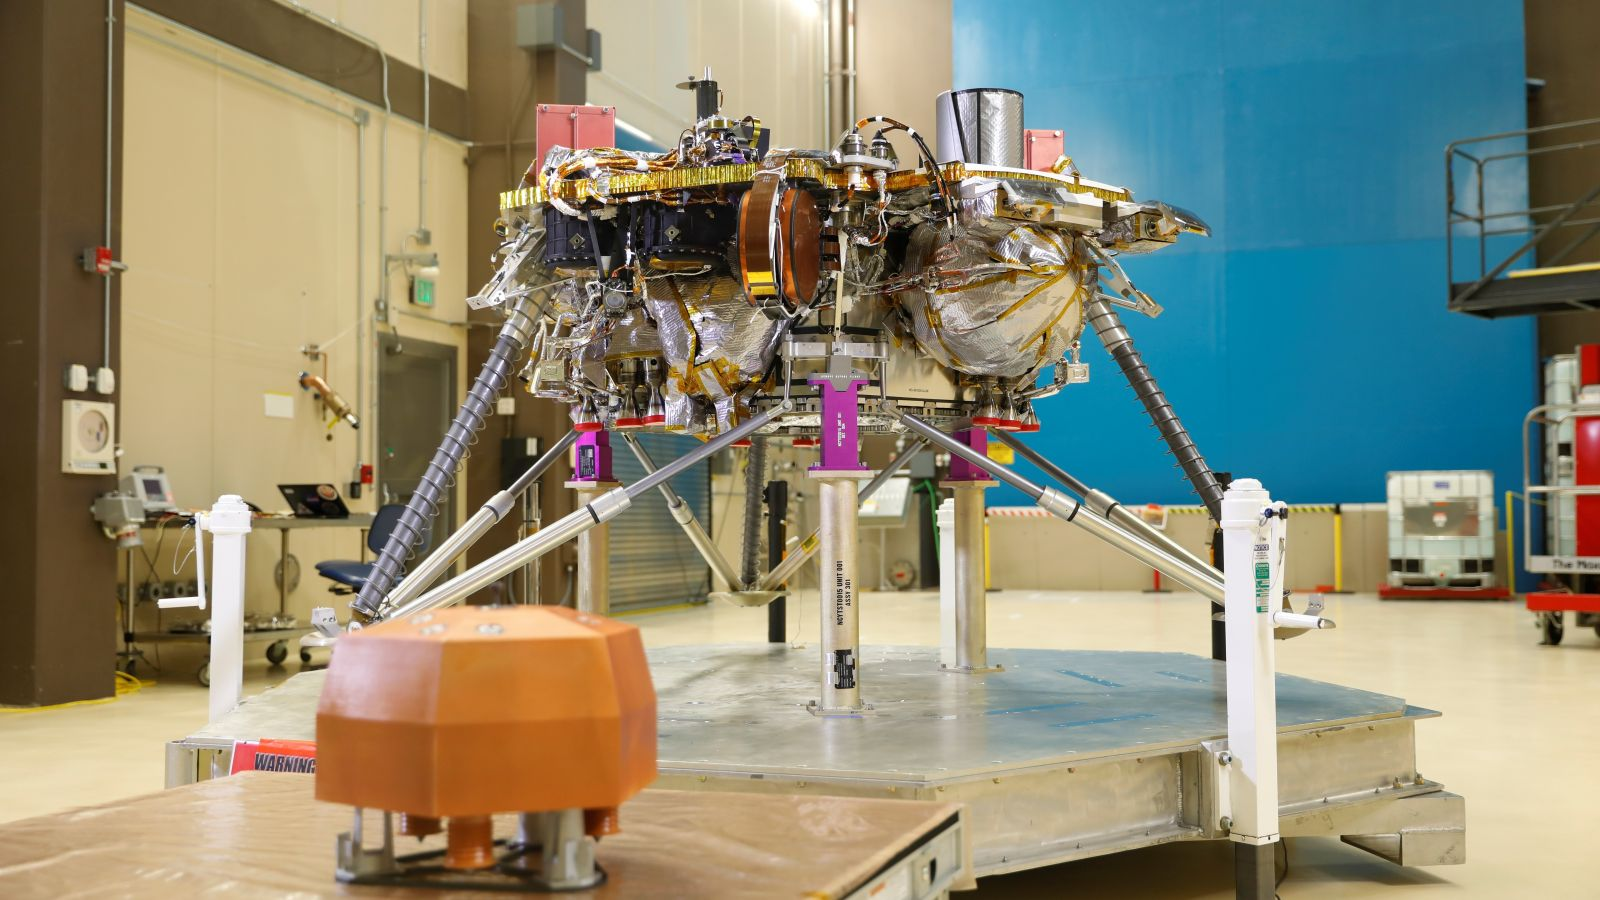 NASA's Insight lander finishes its thermal vacuum test at Lockheed Martin's facility in Littleton, Colorado. Photo Credit: Lockheed Martin.